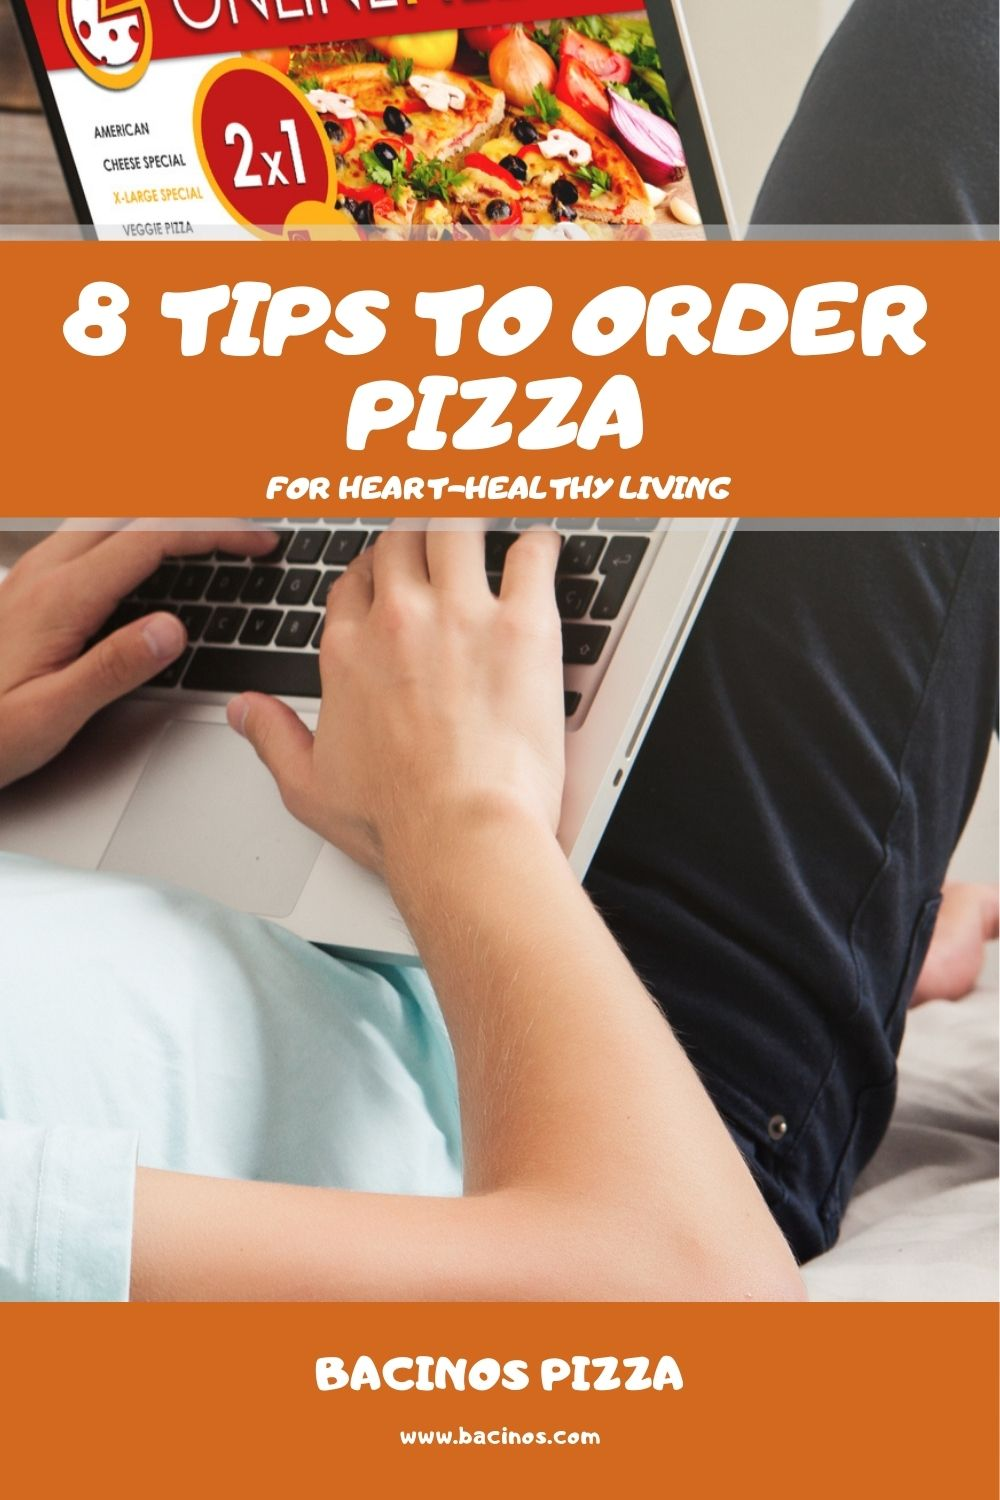 8 Tips to Order Pizza for Heart-Healthy Living 1